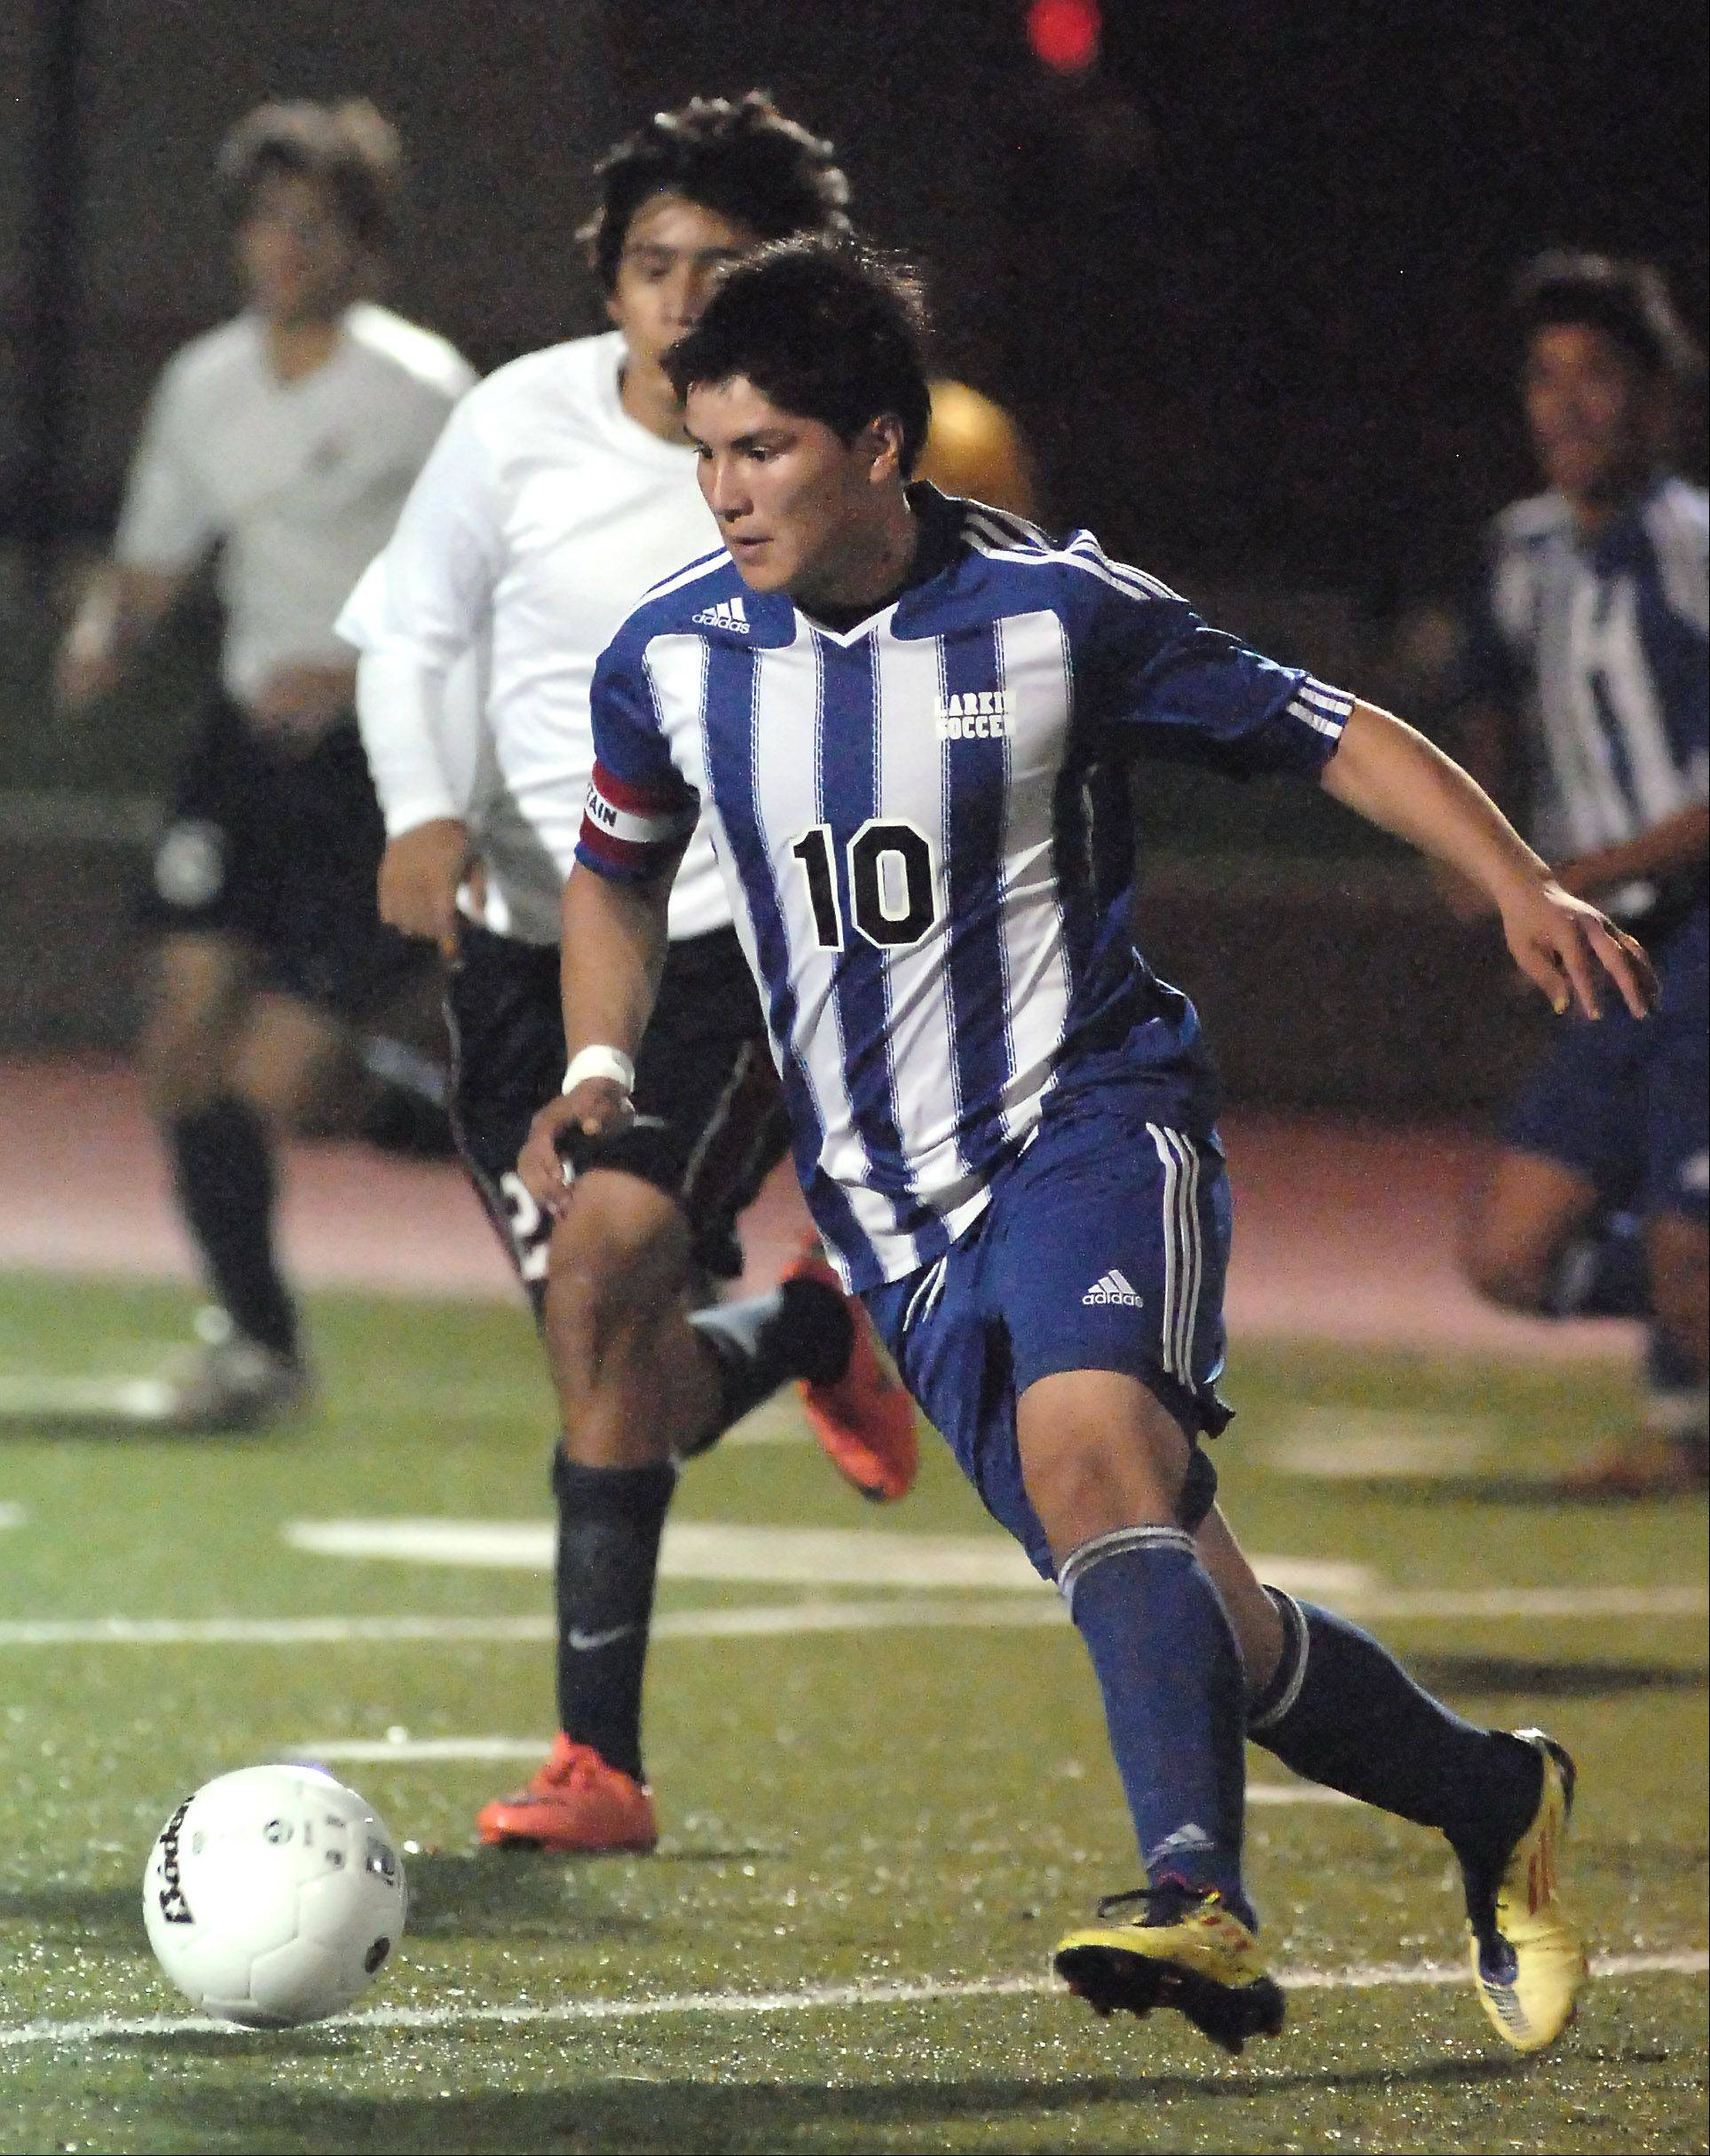 Larkin senior forward Erik Rodriguez is the honorary captain of the Daily Herald's All-Area team for a second straight season. Rodriguez had 22 goals and 14 assists heading into sectional play. An all-conference selection the last three years, Rodriguez led the Royals in scoring all four years.